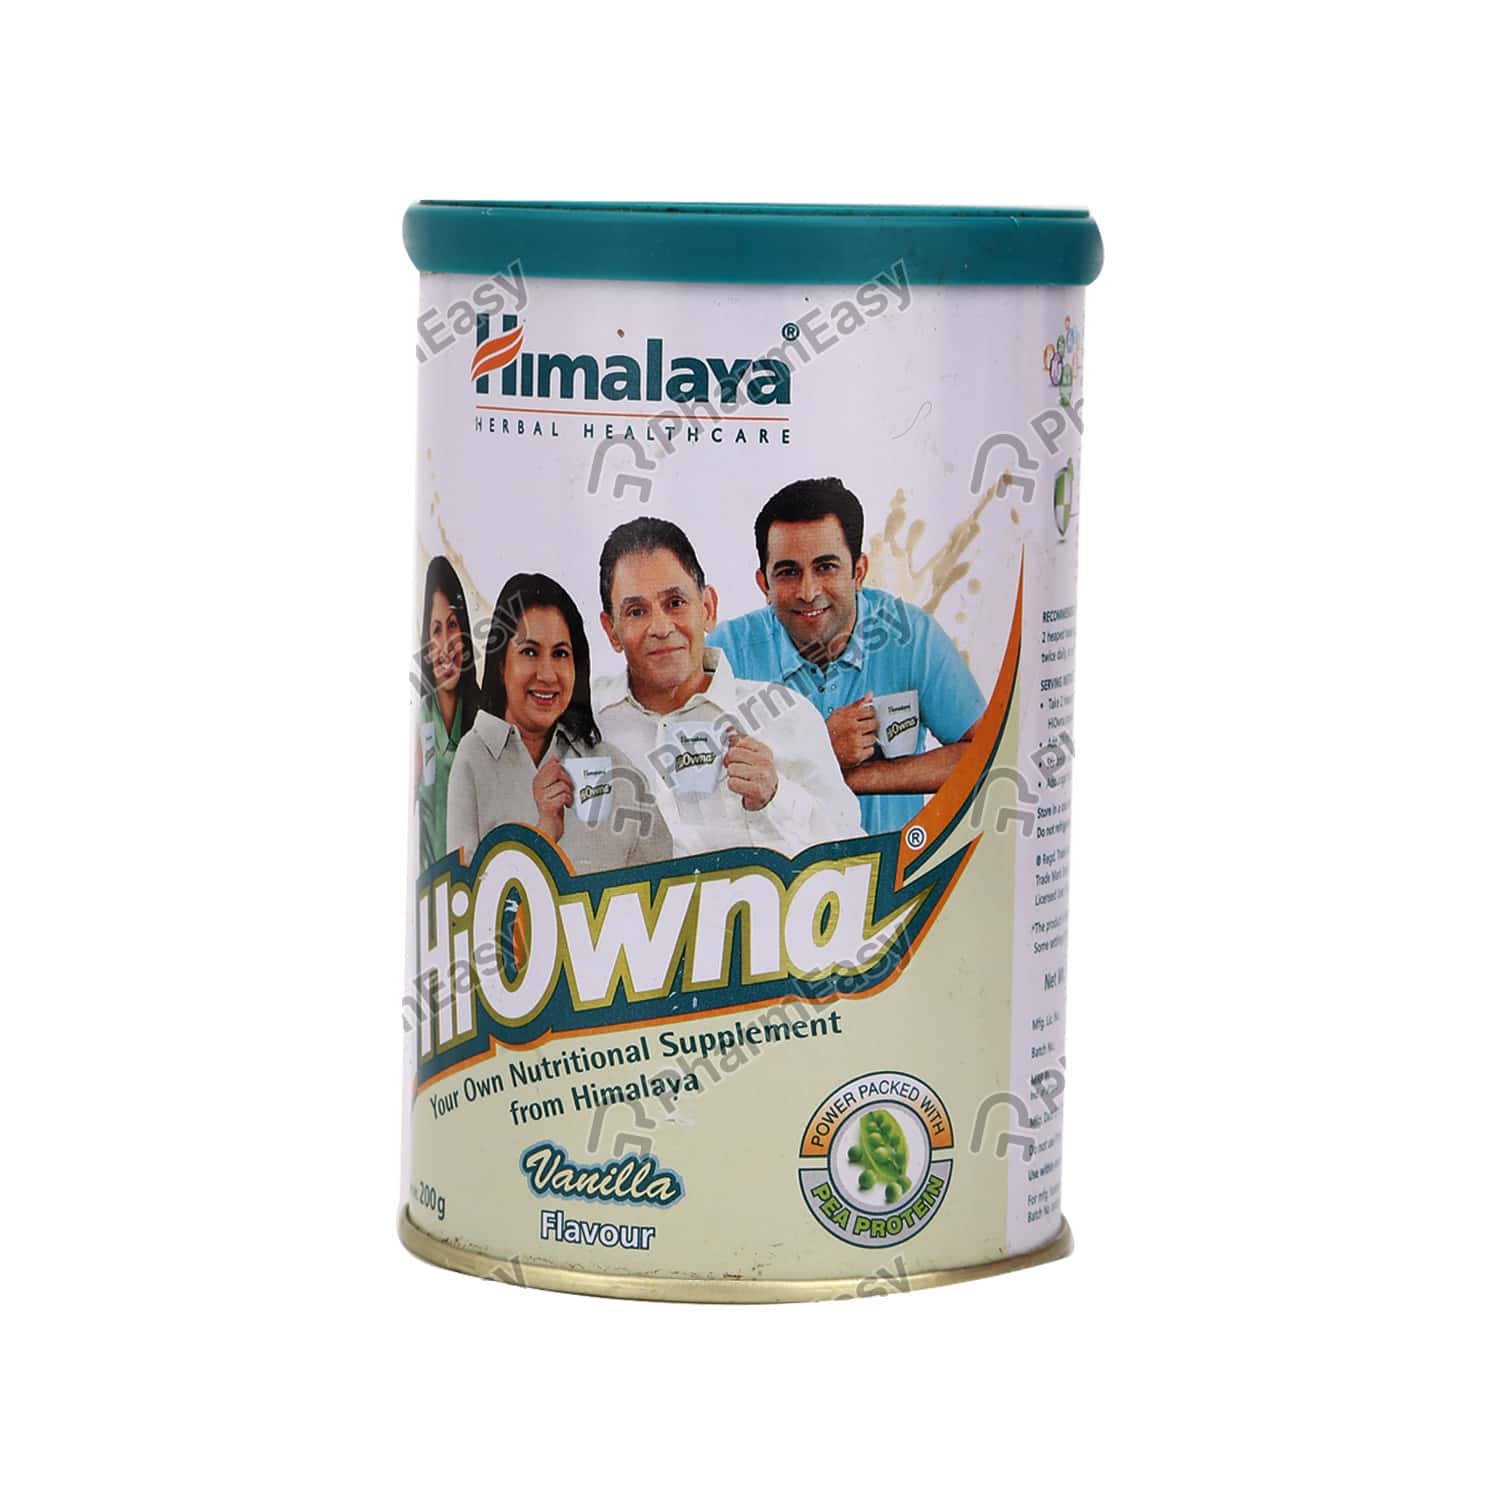 Hiowna Vanilla Flavour Powder 200gm